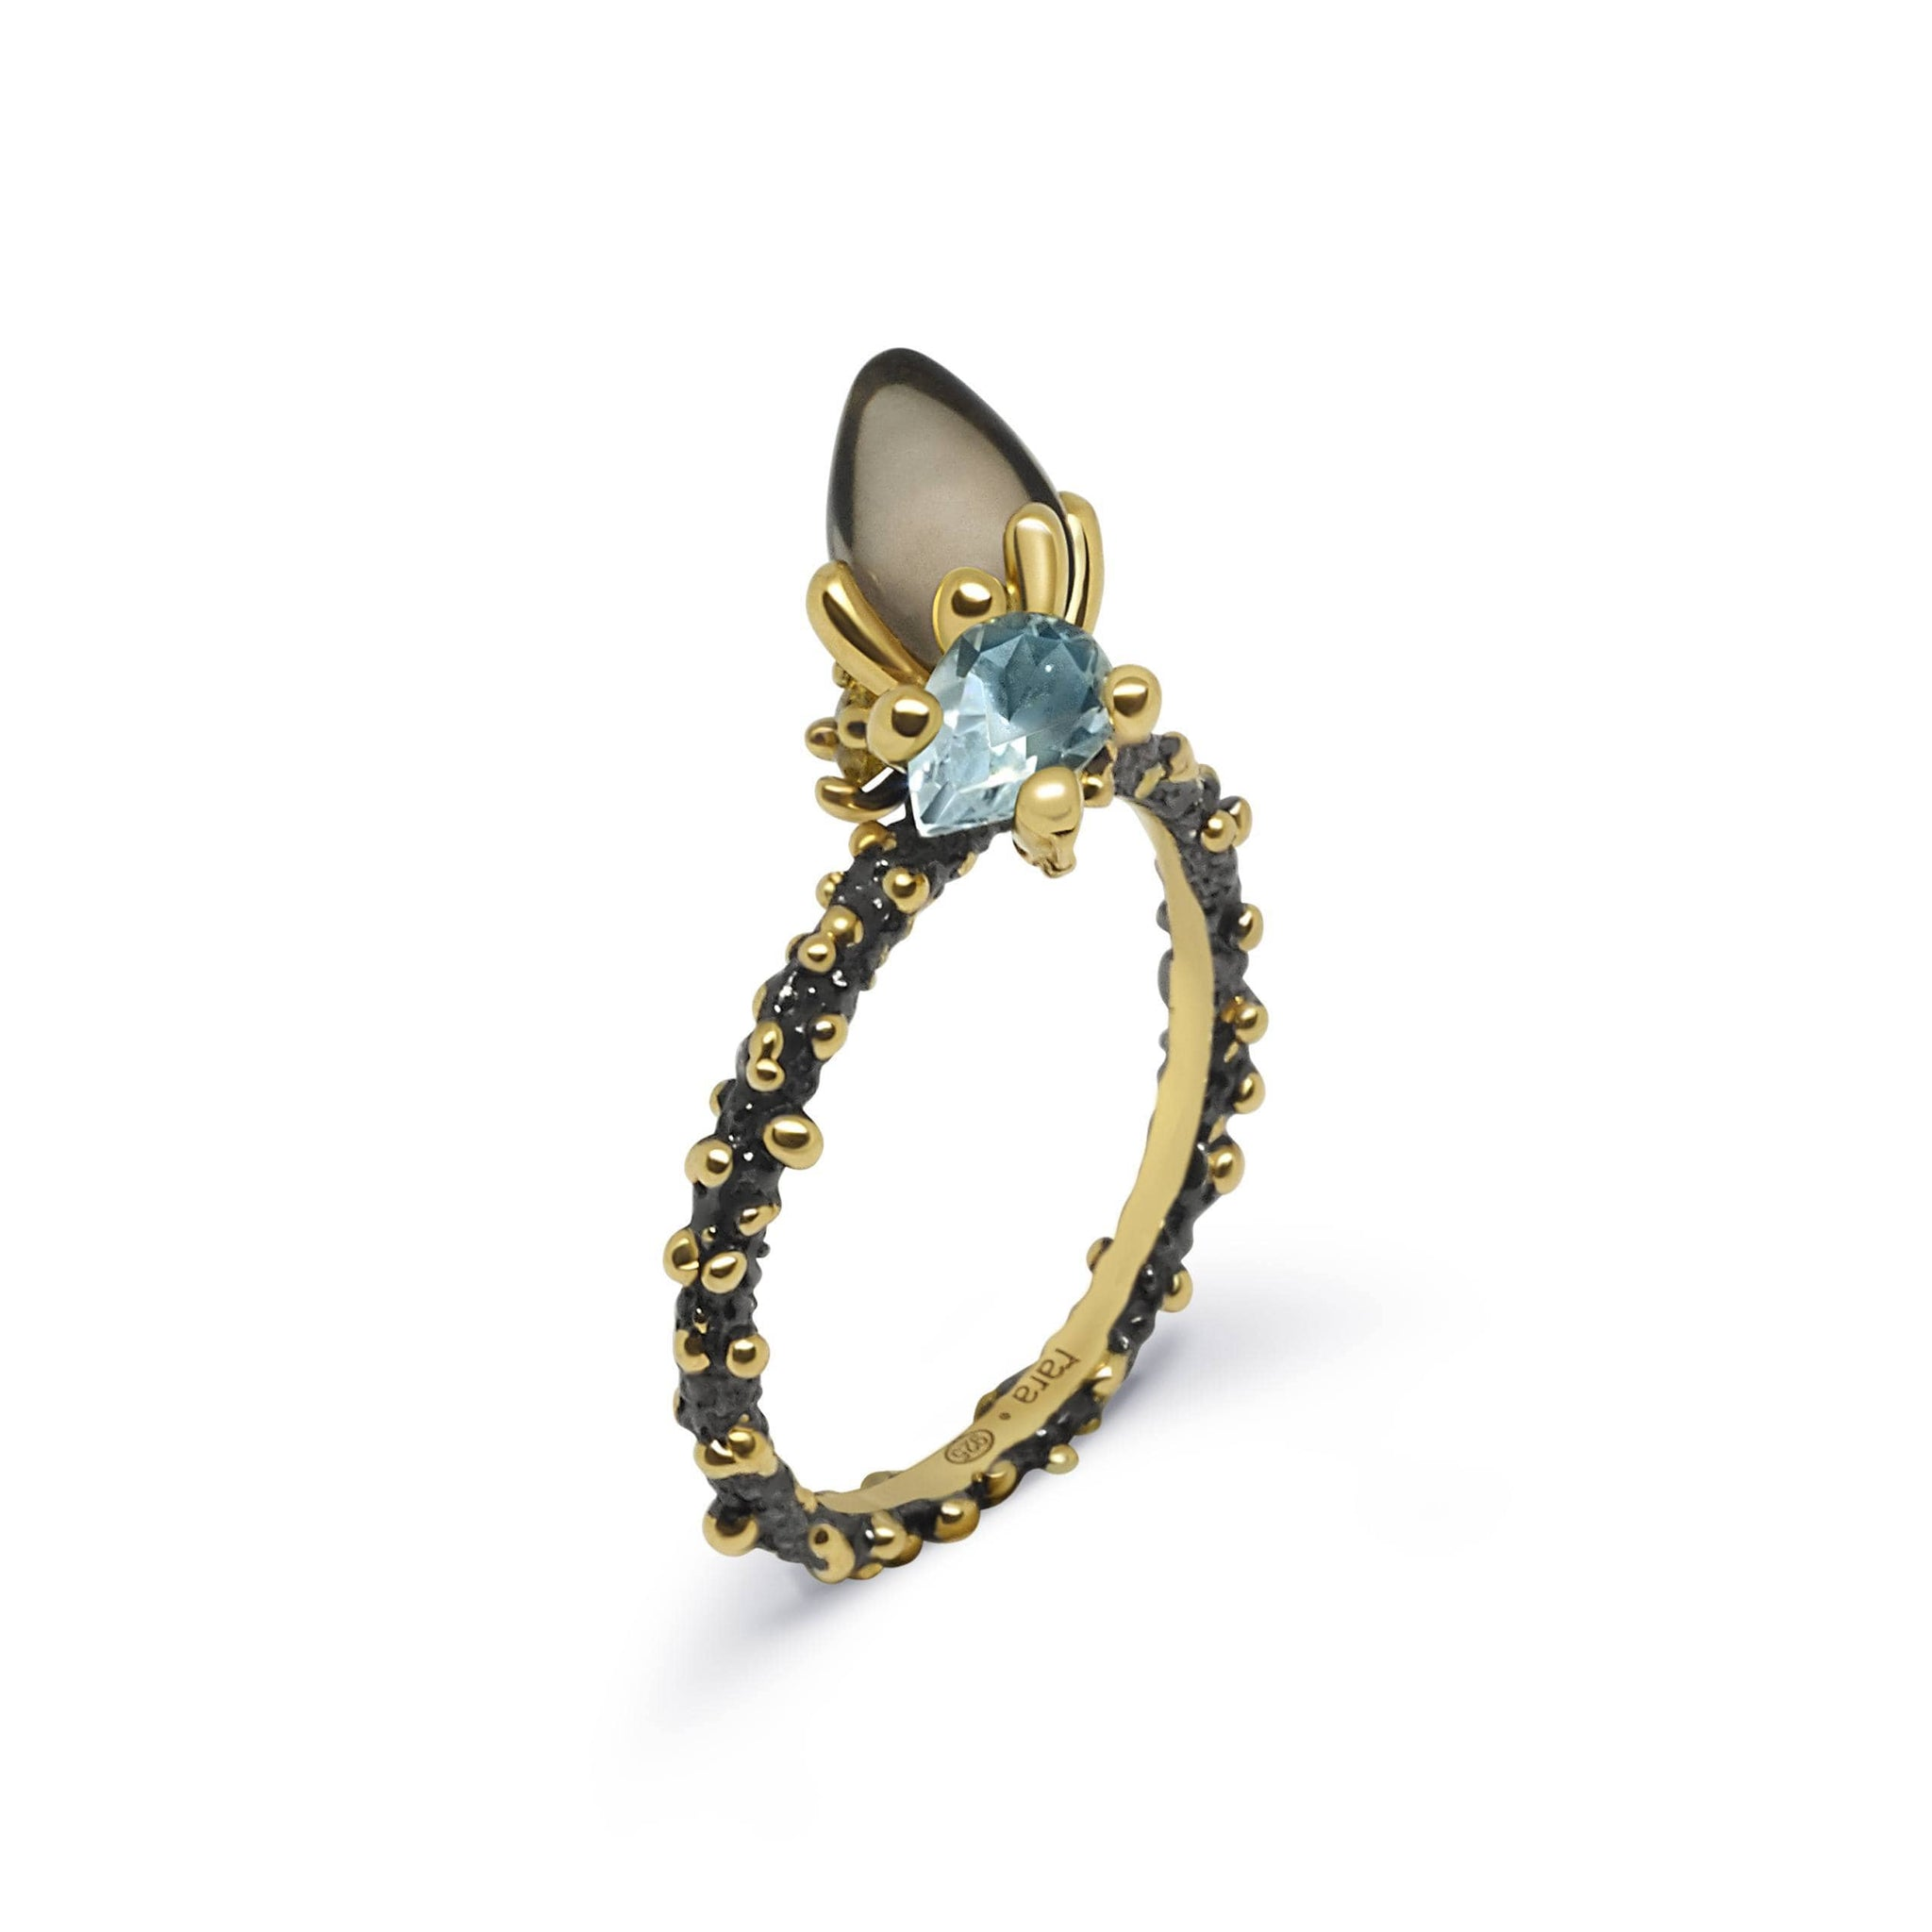 Coral Unique Ring with Rauch Topaz & Topaz - Rara Jewelry